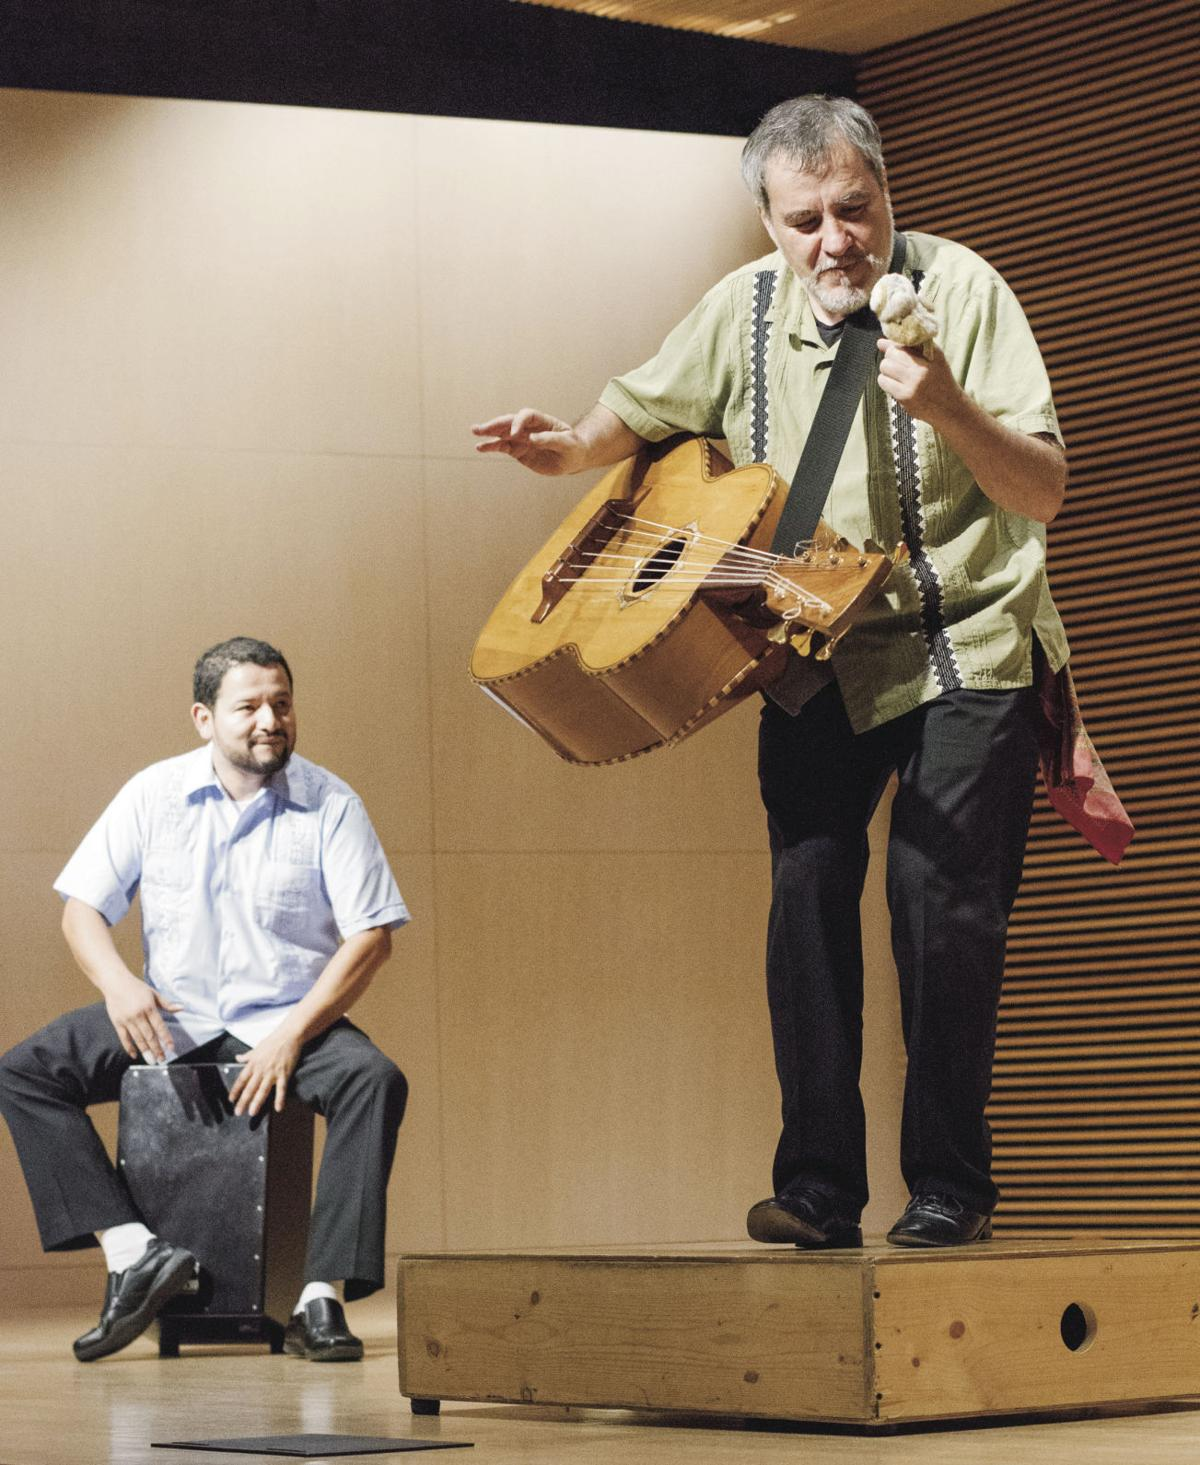 Lodi library to host bilingual musical show